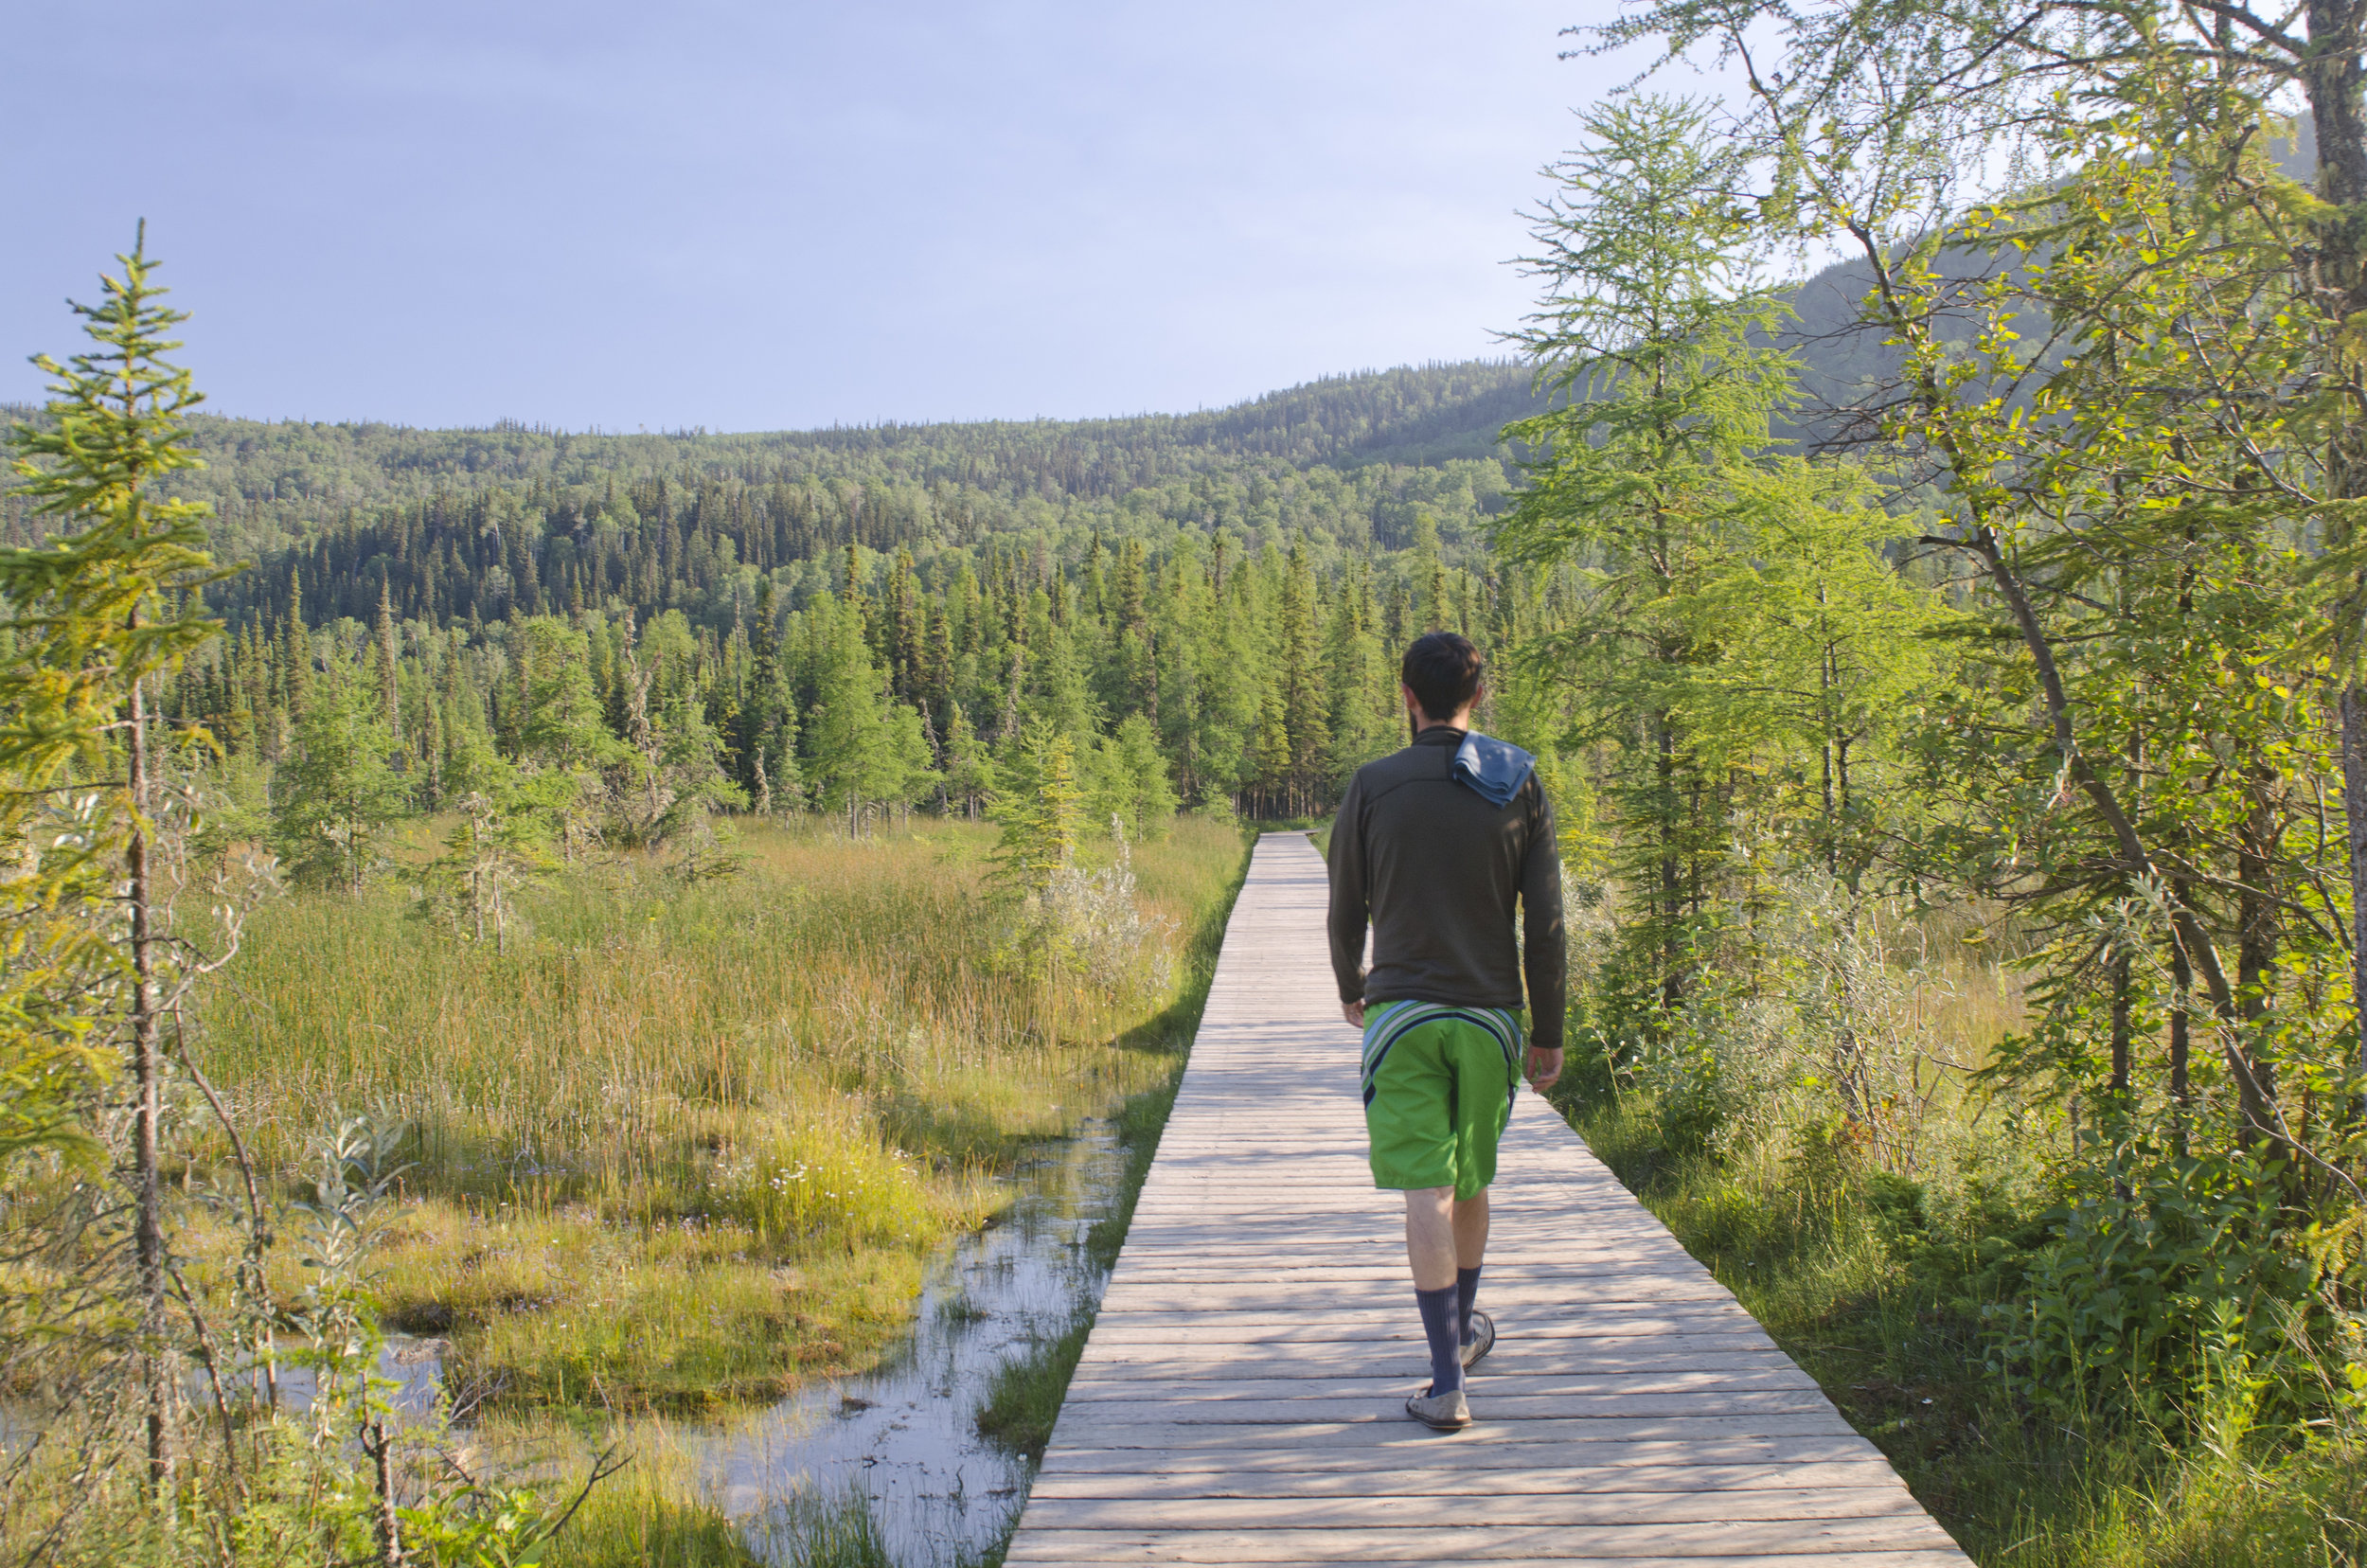 Boardwalk to the hot springs